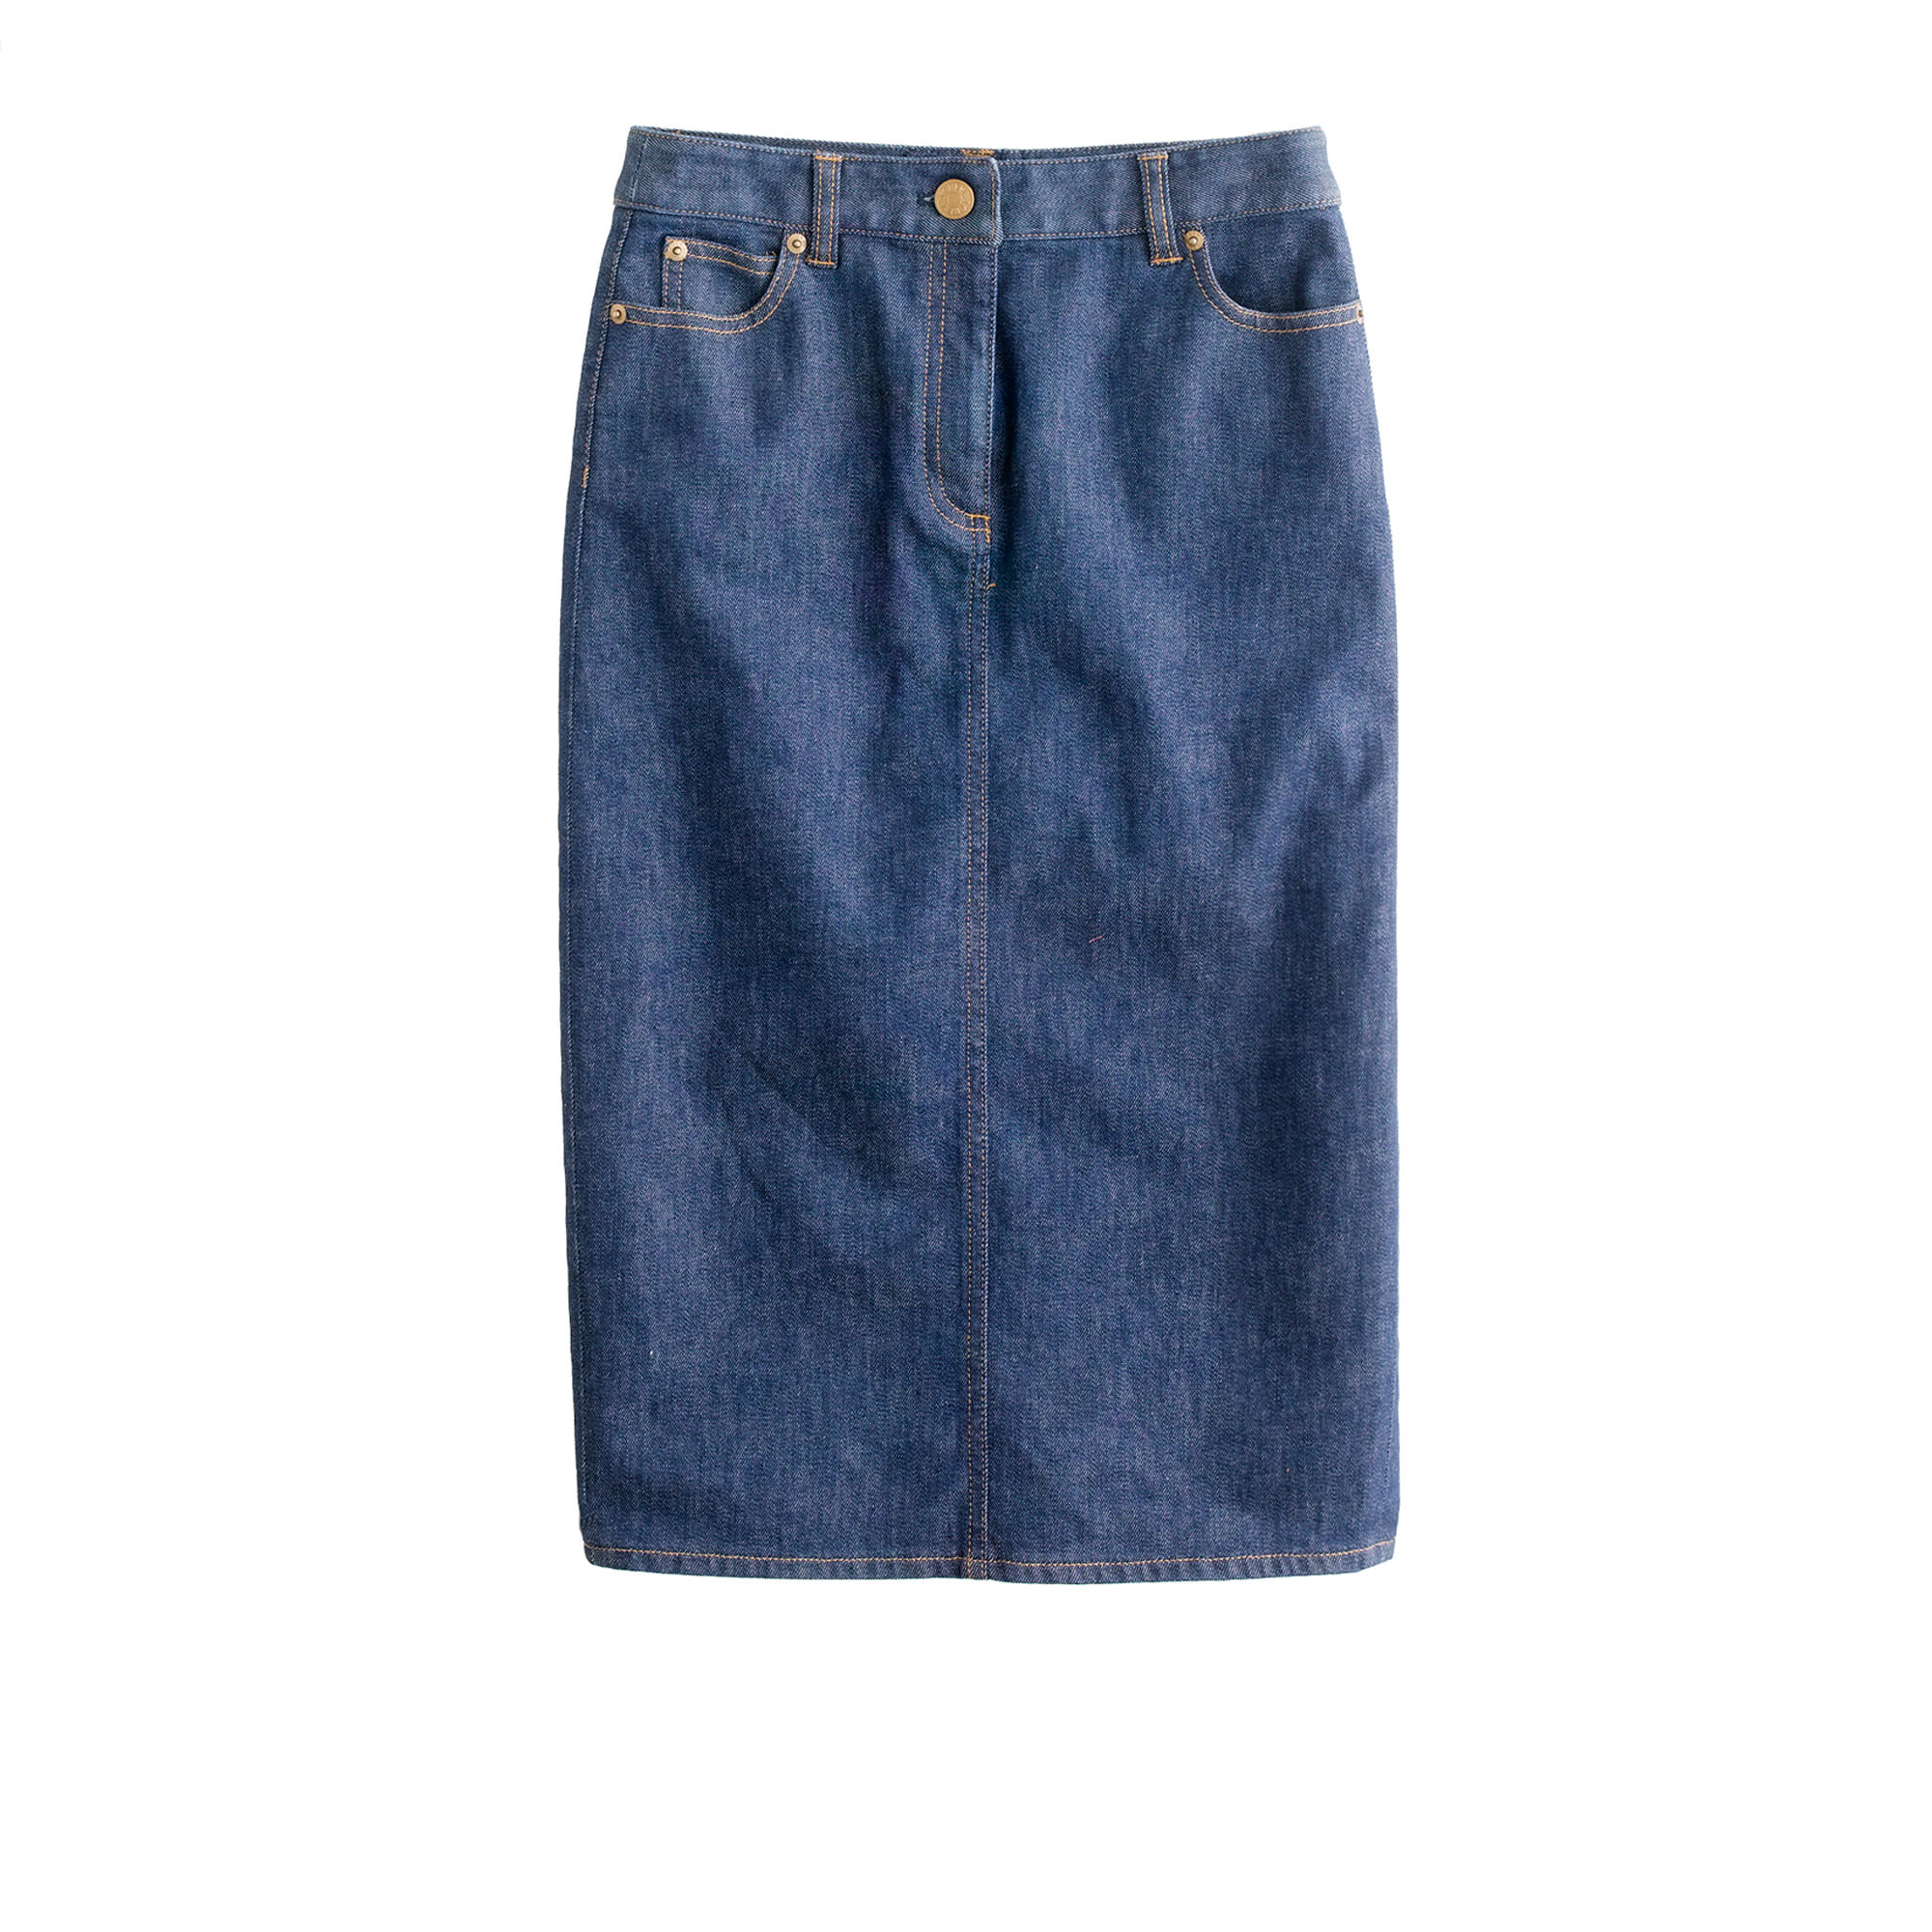 High-waisted denim pencil skirt in rinse wash : Women pencil | J.Crew